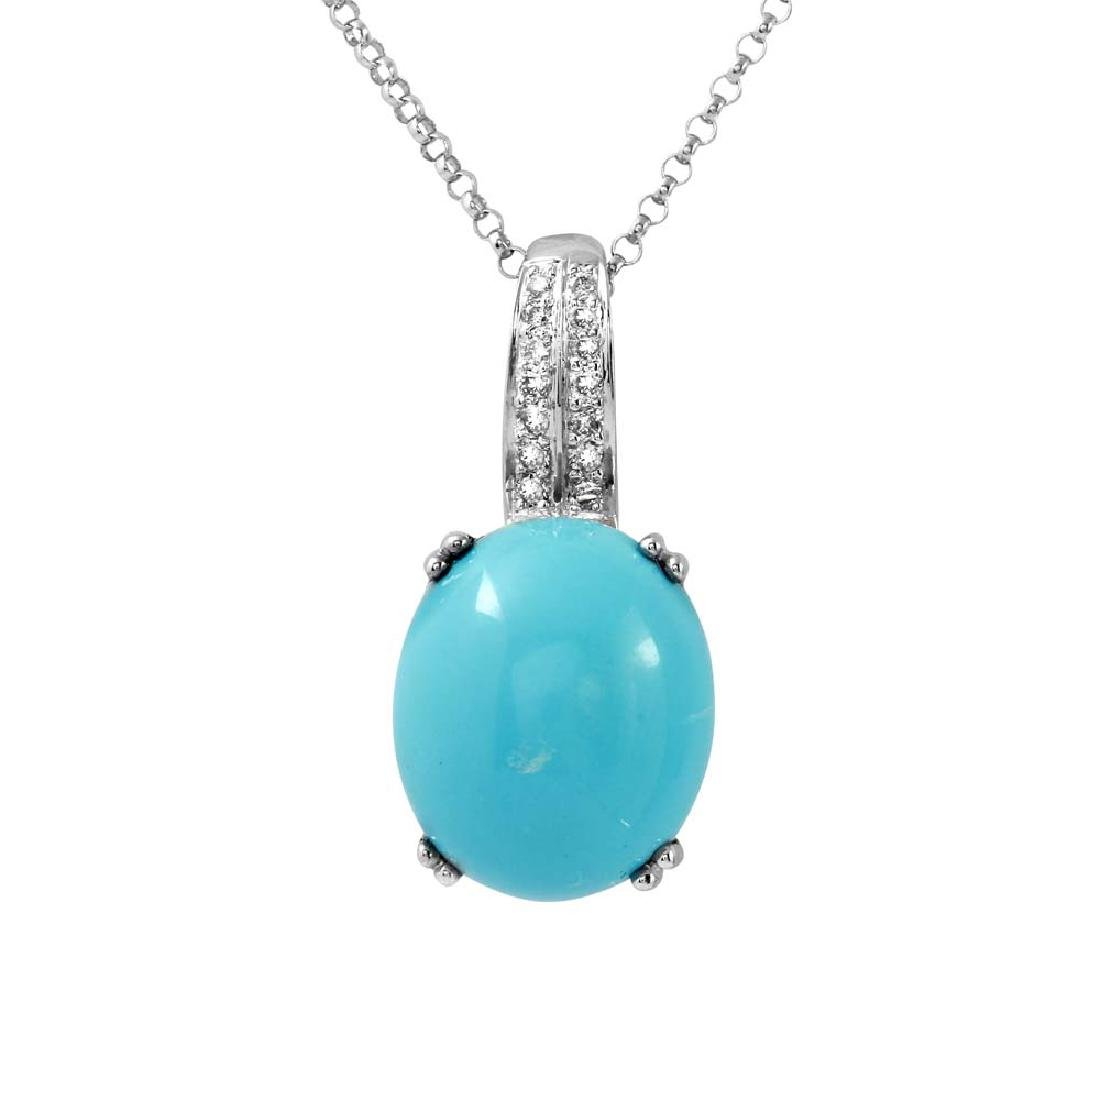 14KT White Gold 5.77ct Turquoise and Diamond Pendant